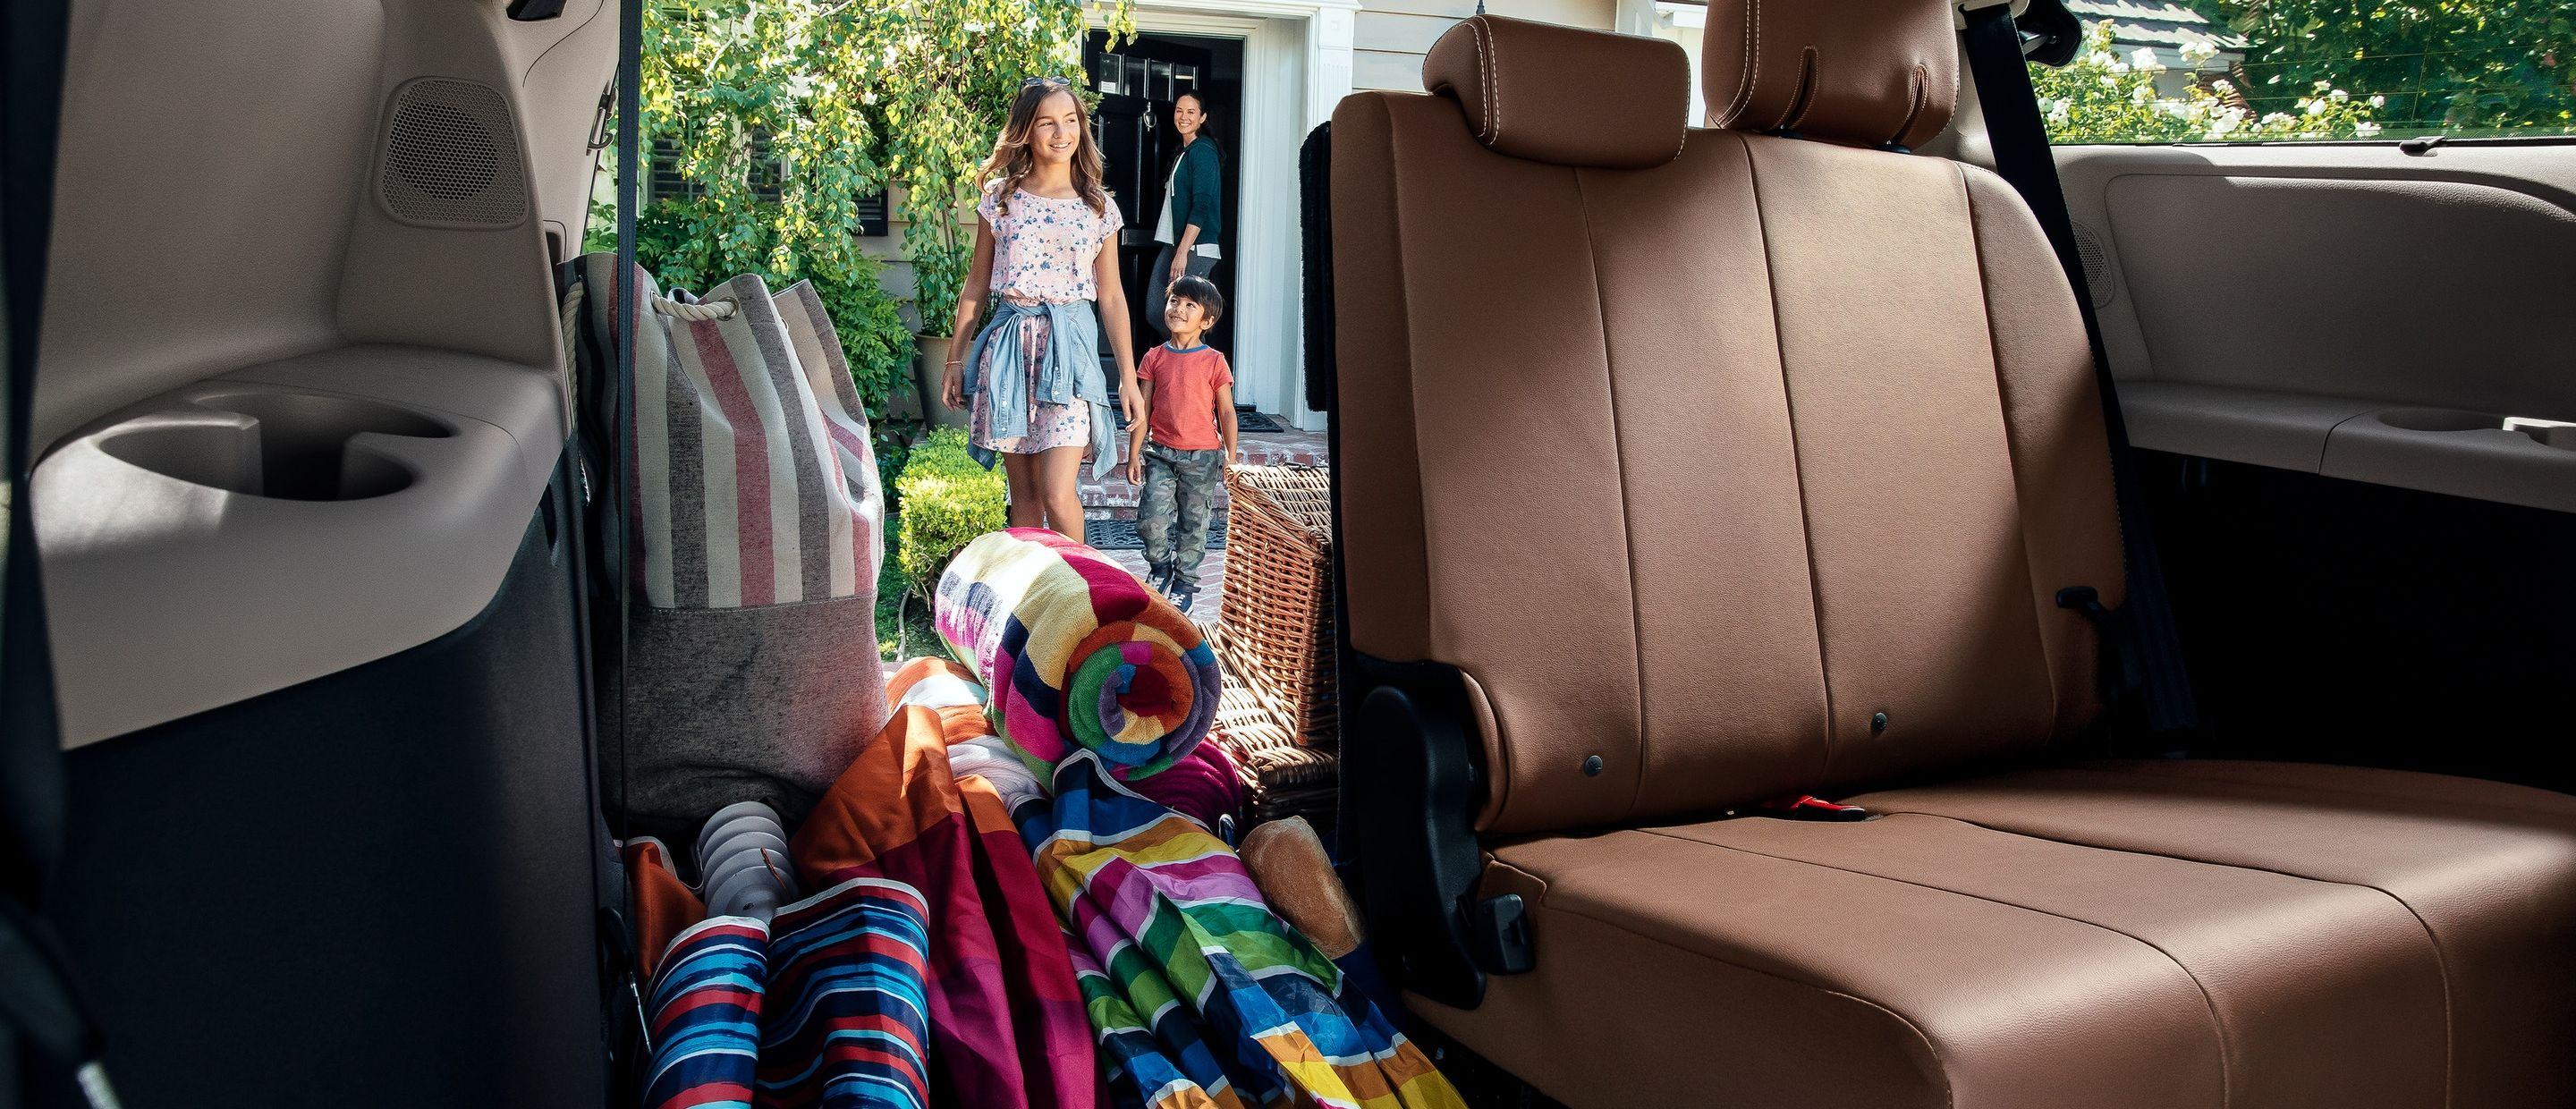 Customizable Capacity in the Sienna!